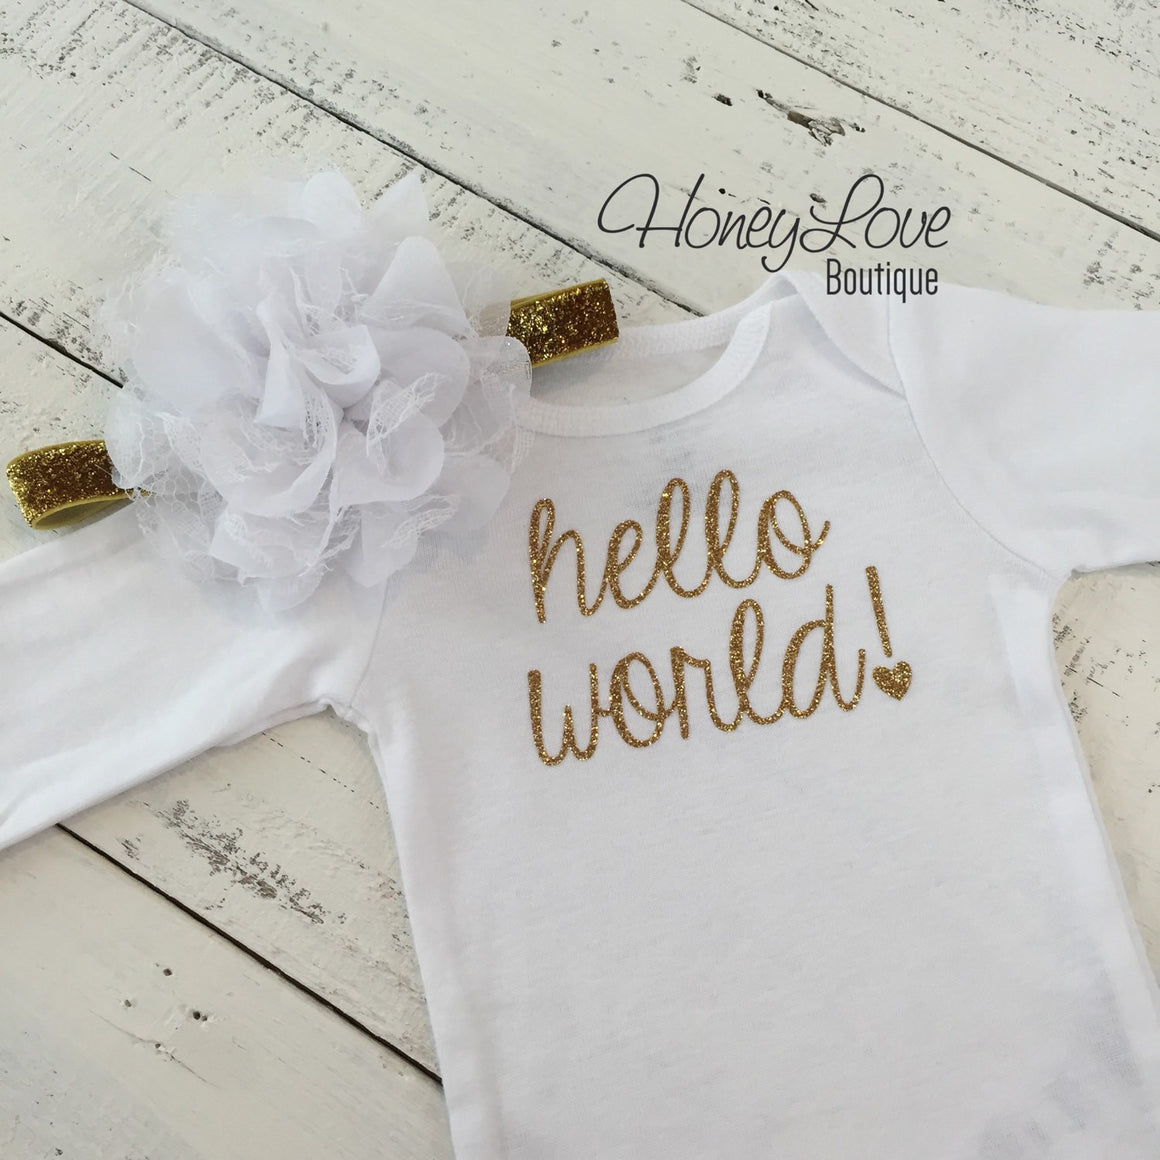 Hello World! Gold Glitter bodysuit and headband set - HoneyLoveBoutique